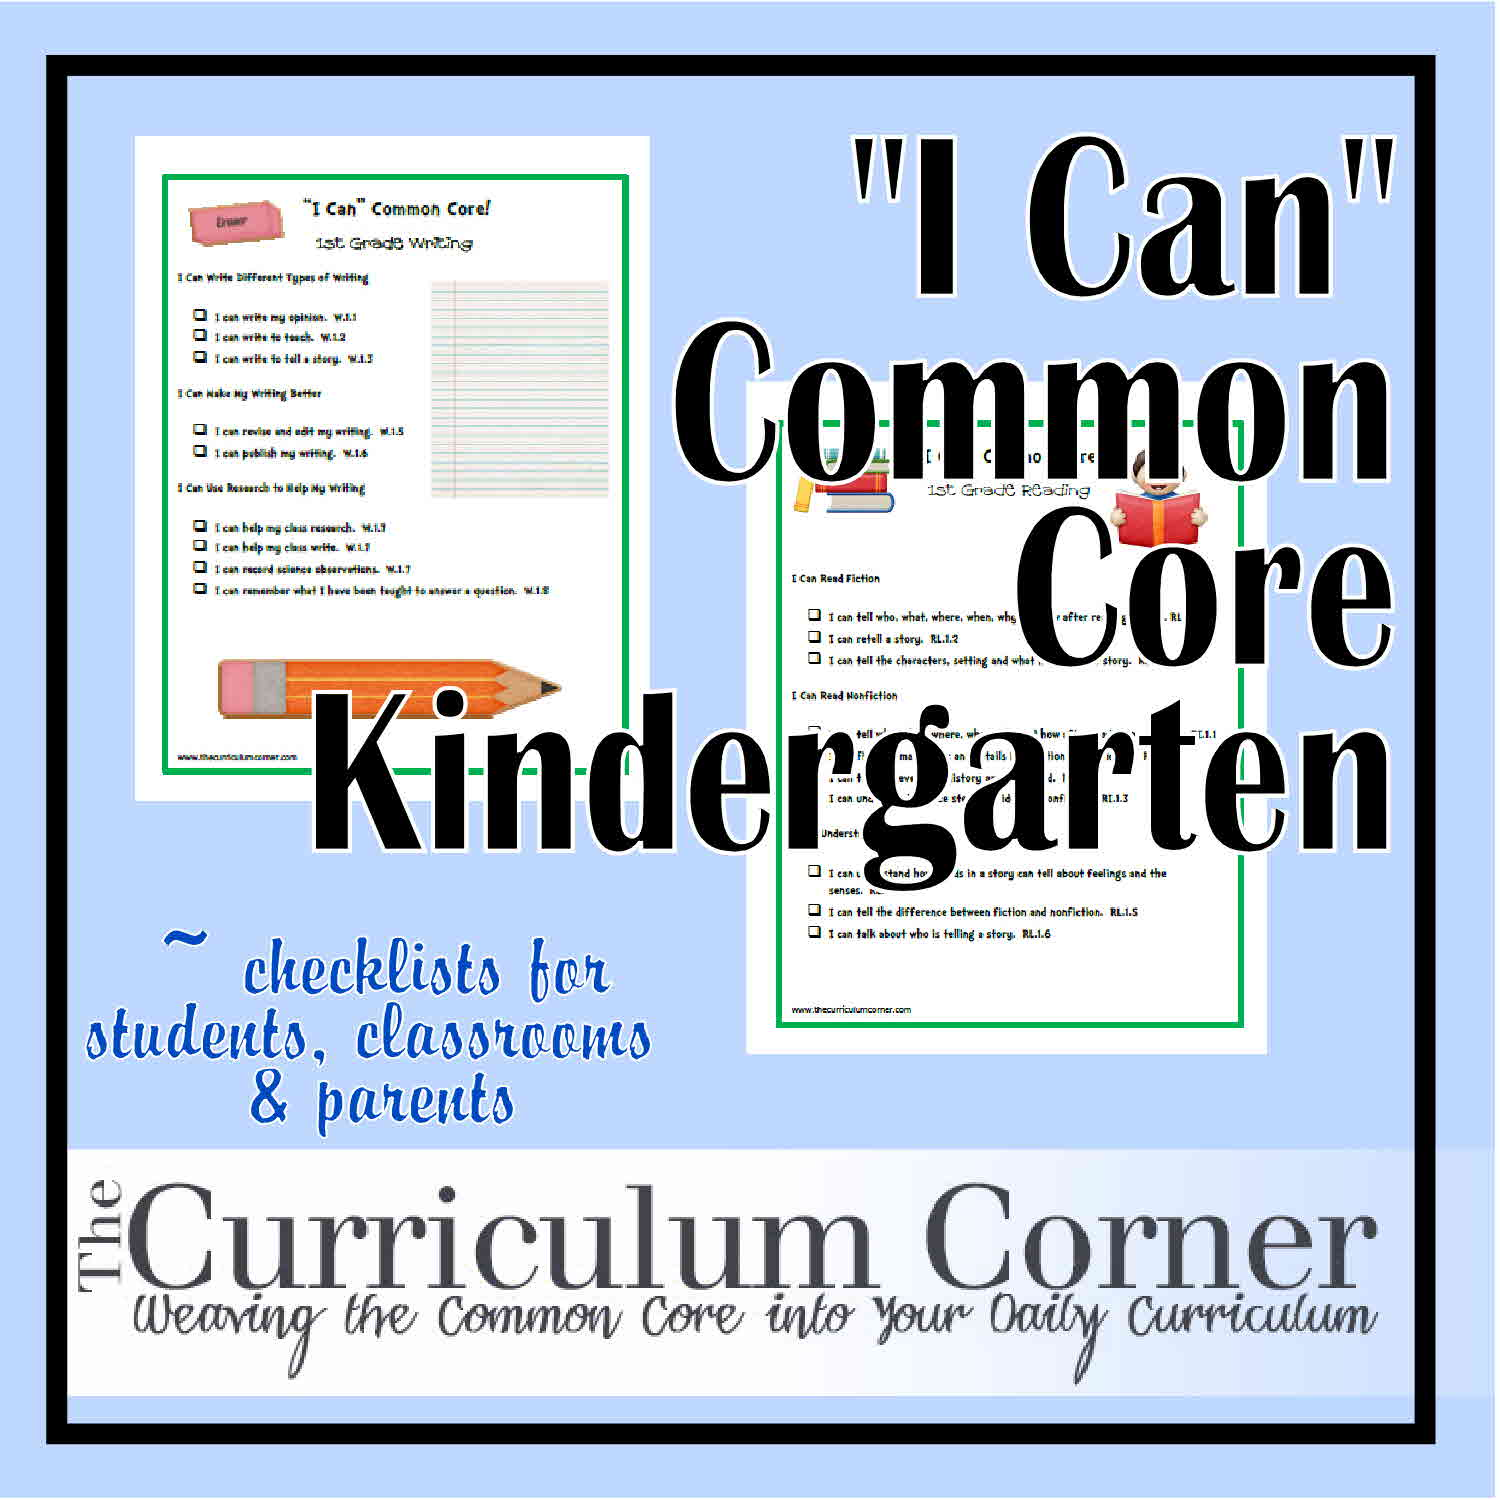 Friends Formations Common Cores Standards Common Core